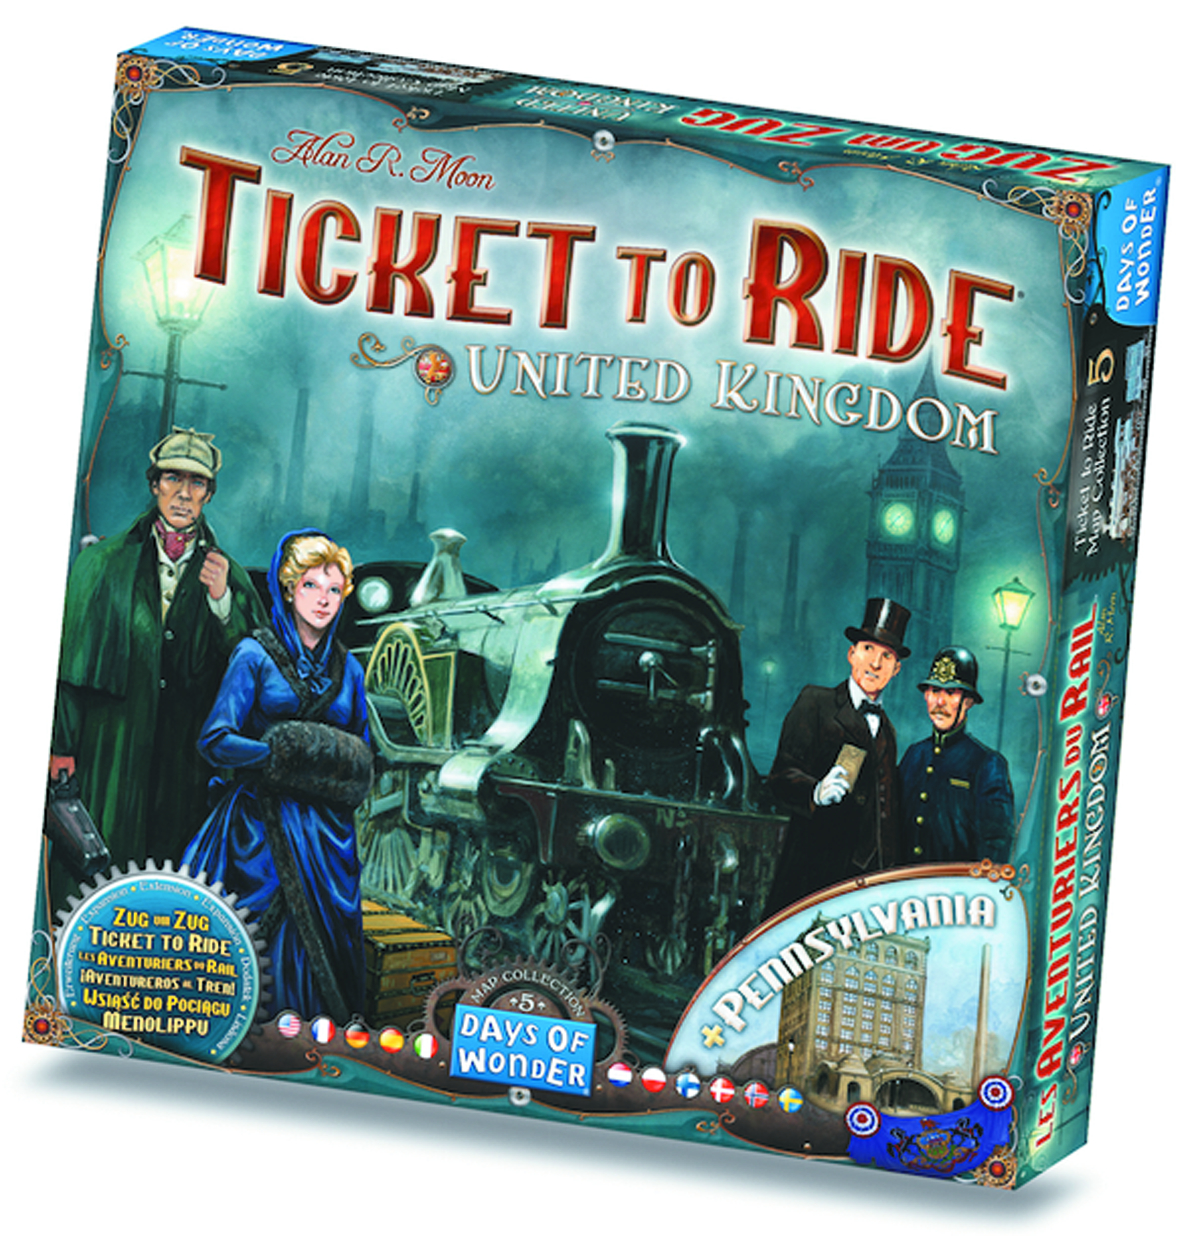 TICKET TO RIDE MAP COLLECTION 5 UNITED KINGDOM